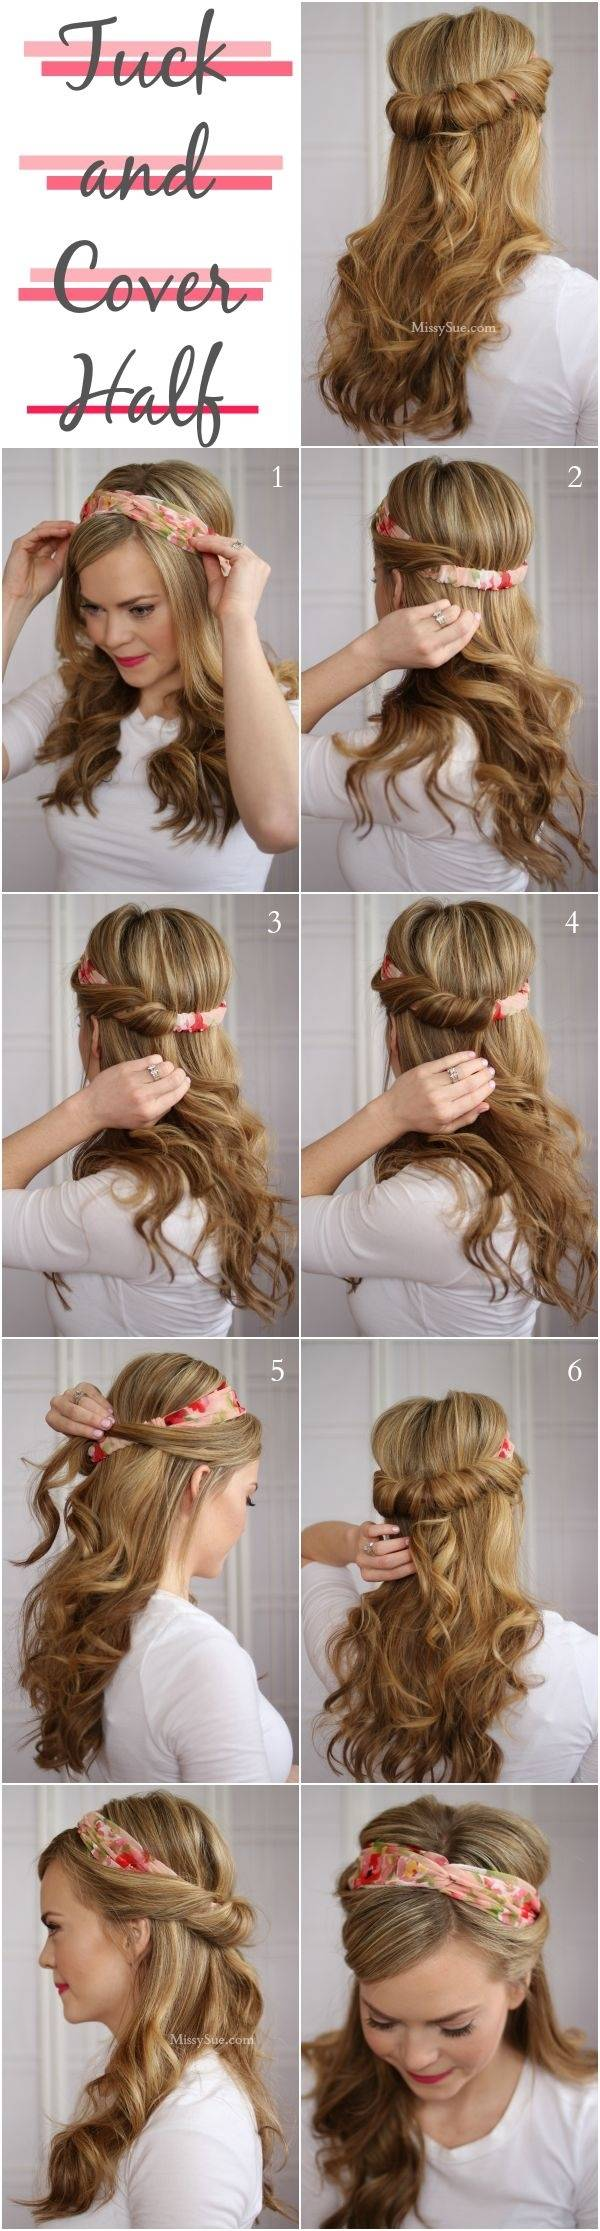 quick hairstyle hacks 7